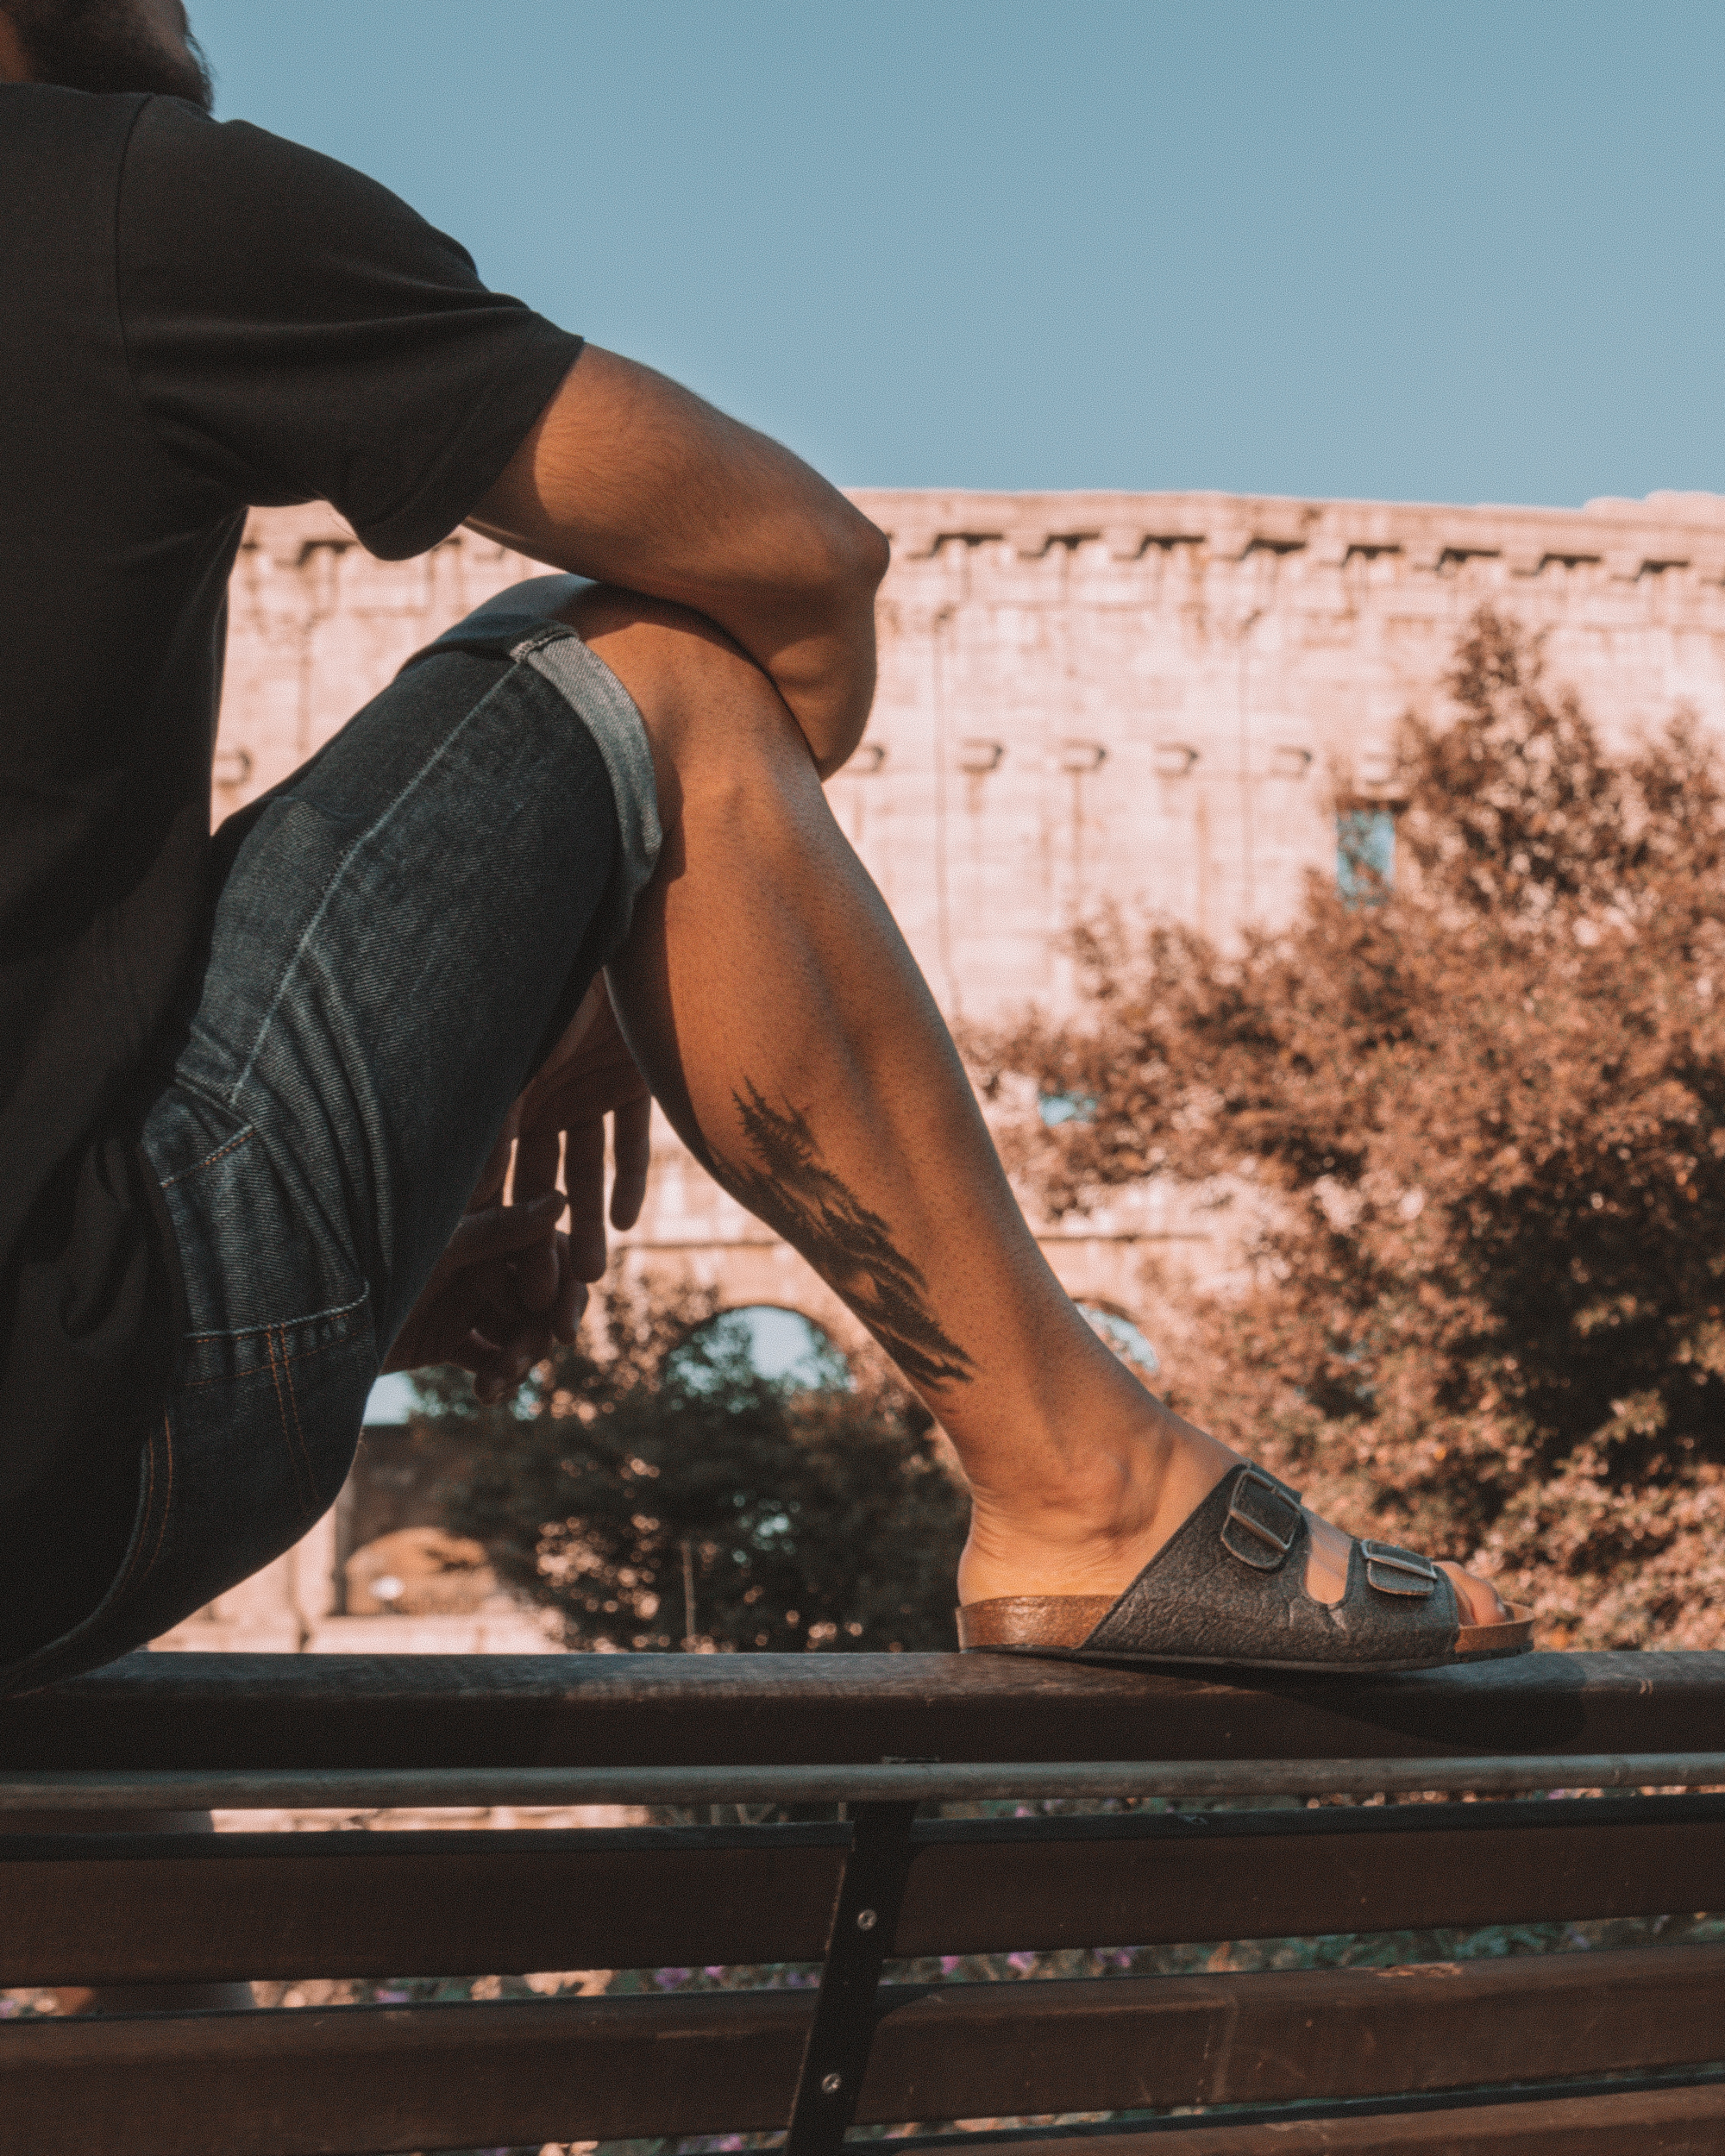 freeoversea nae vegan shoes fair trade portuguese brand slow fashion men sandals beautiful travel couple rome italy ethical style